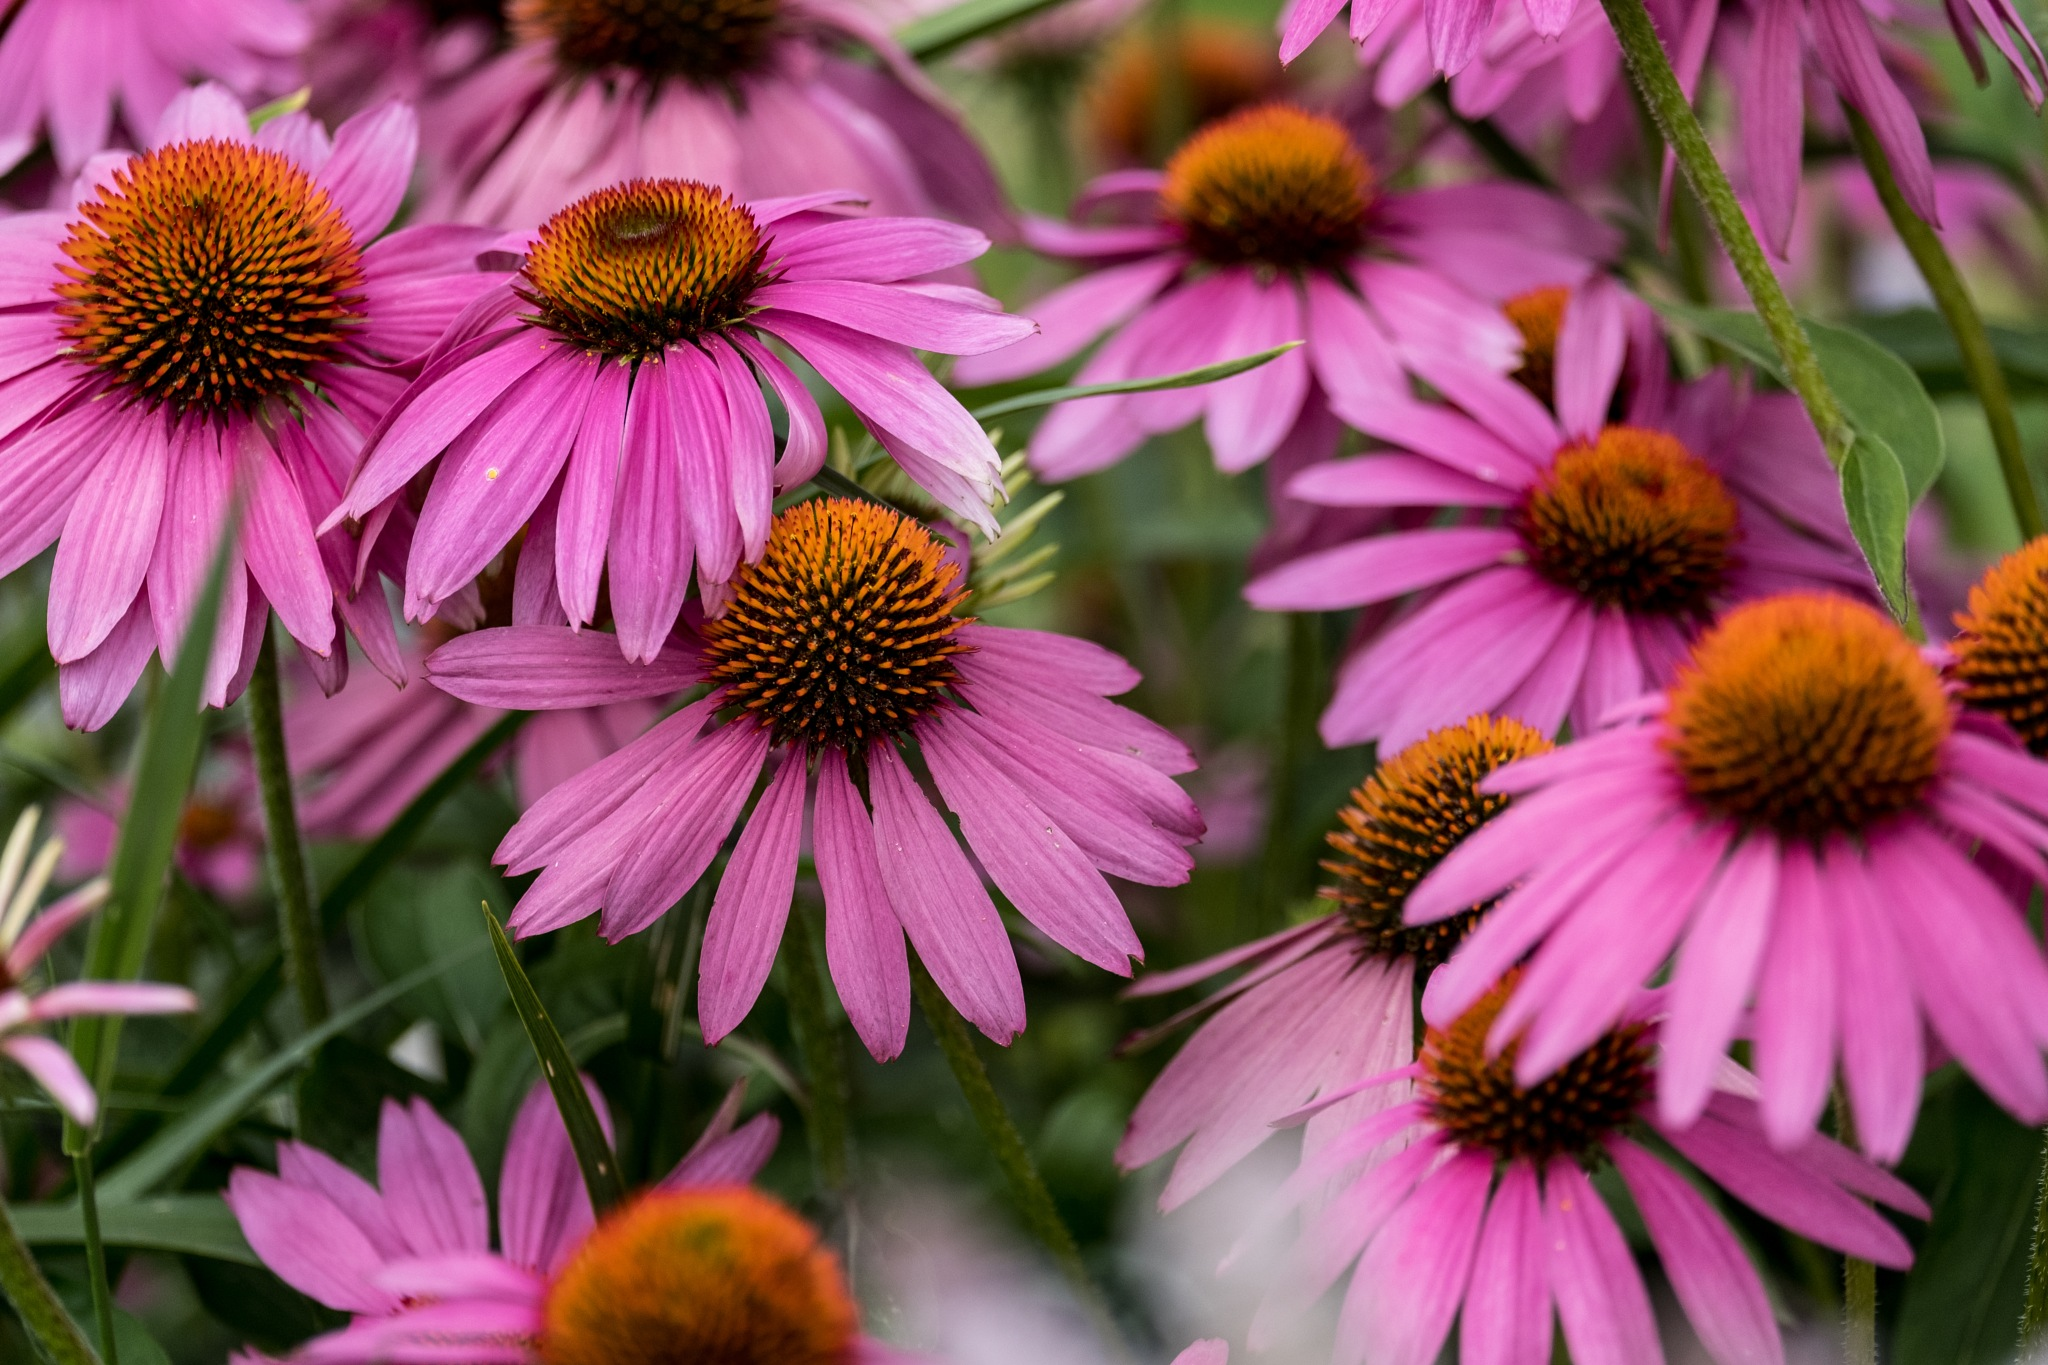 Cone Flowers by David Foster